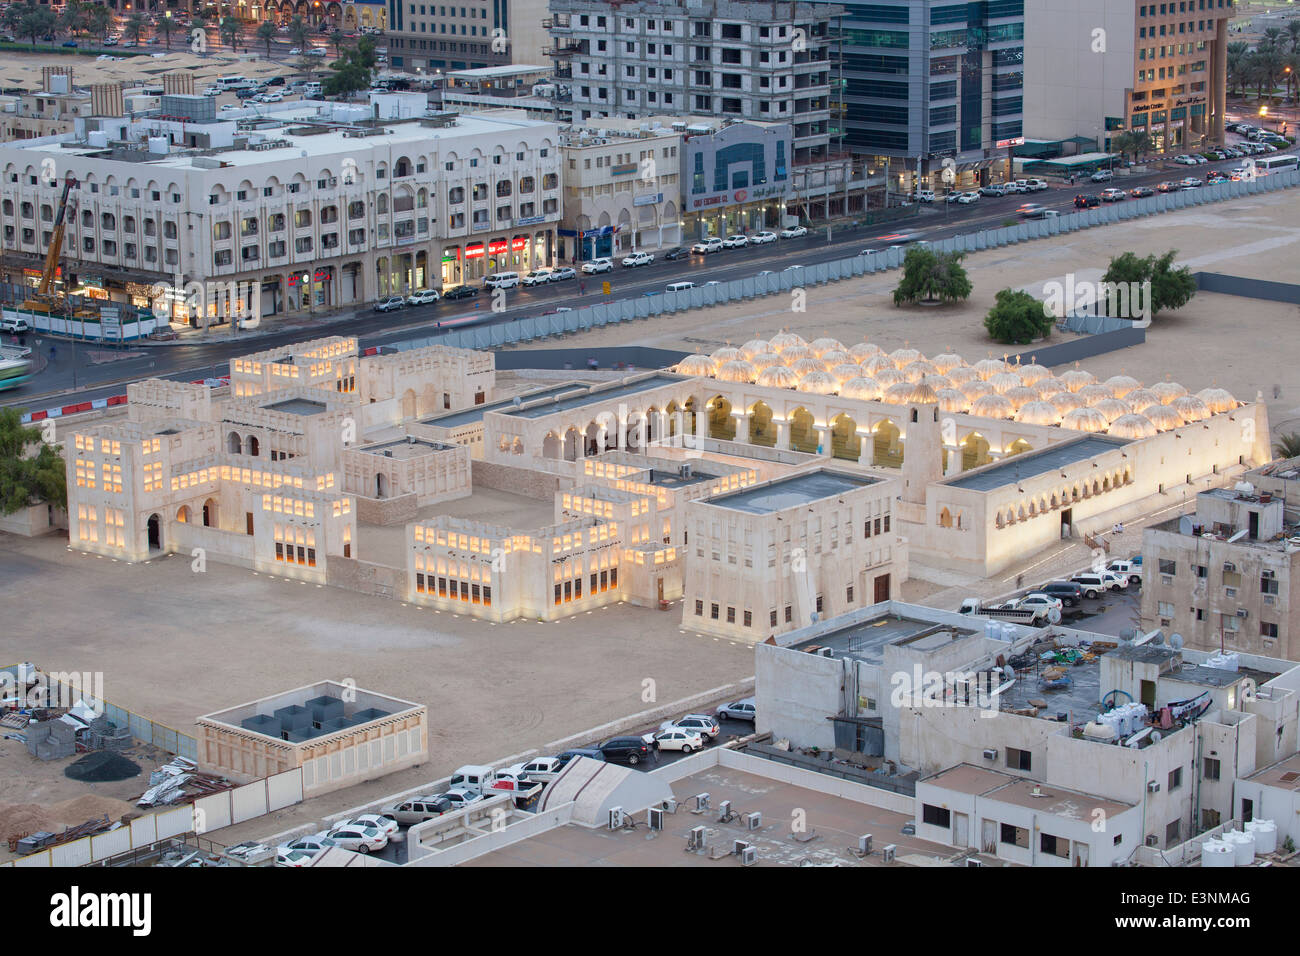 Qatar, Doha, elevated view over the city centre Mosque - Stock Image